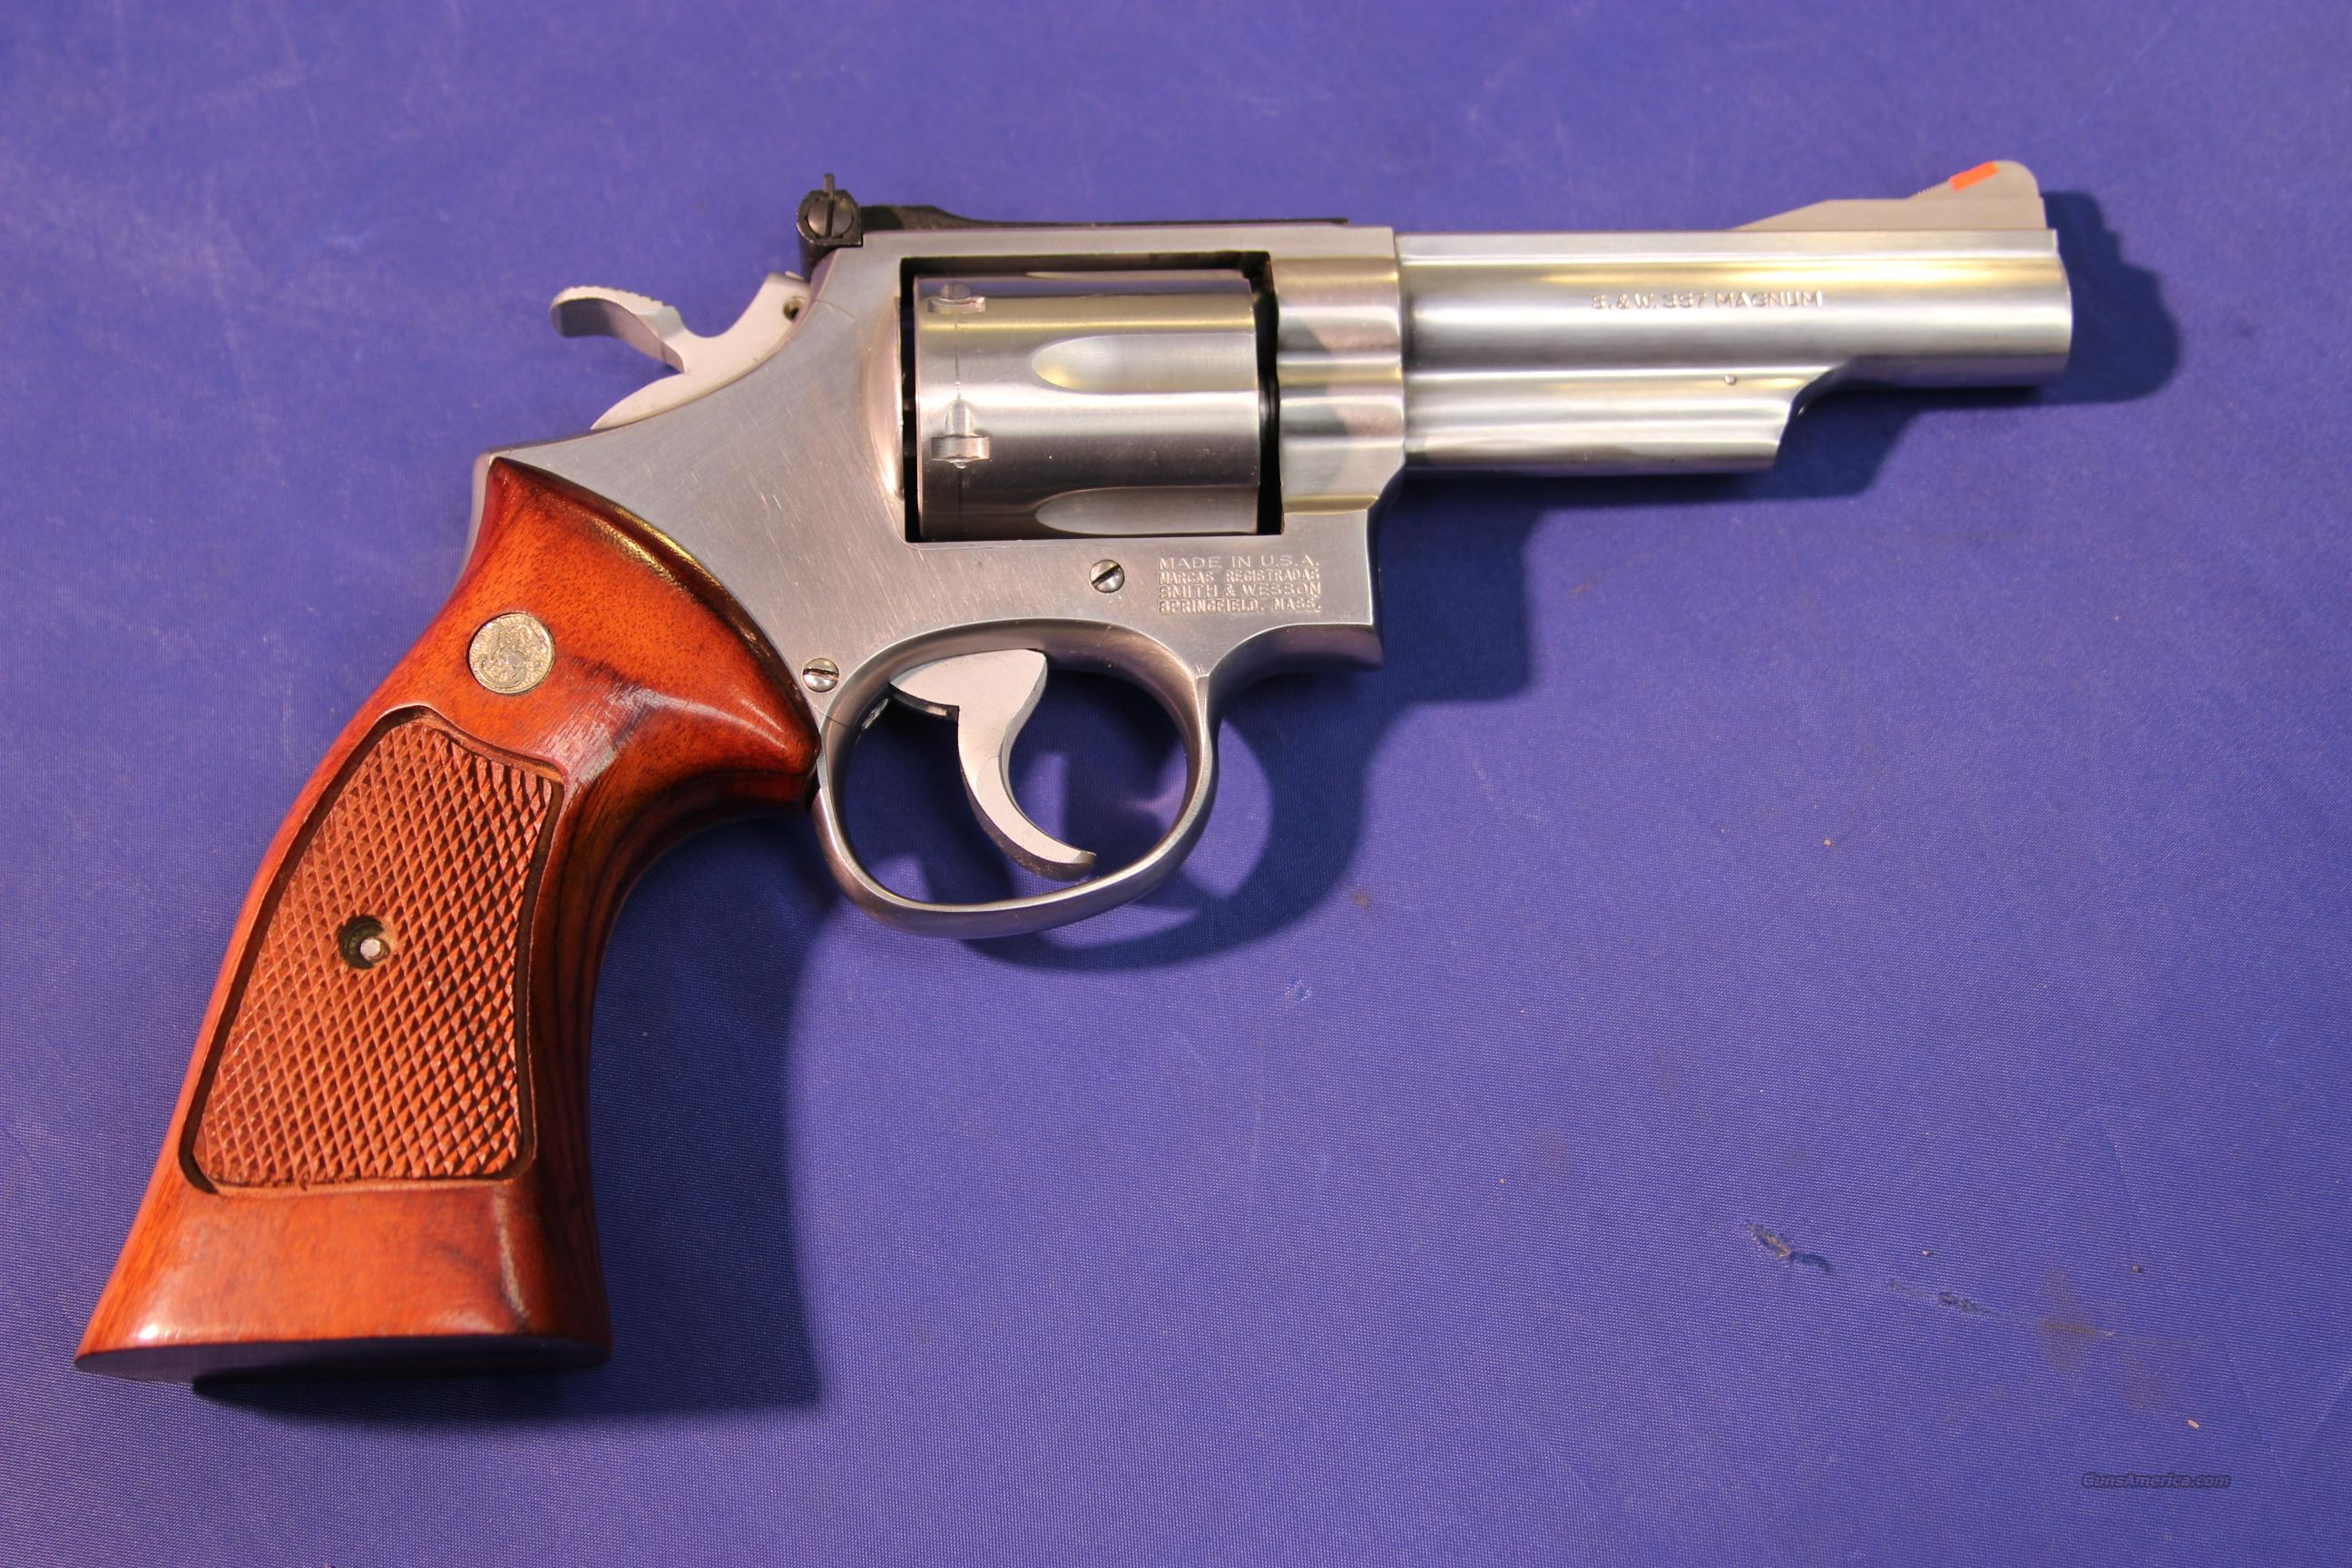 SMITH & WESSON 66-2 .357 MAG  Guns > Pistols > Smith & Wesson Revolvers > Full Frame Revolver